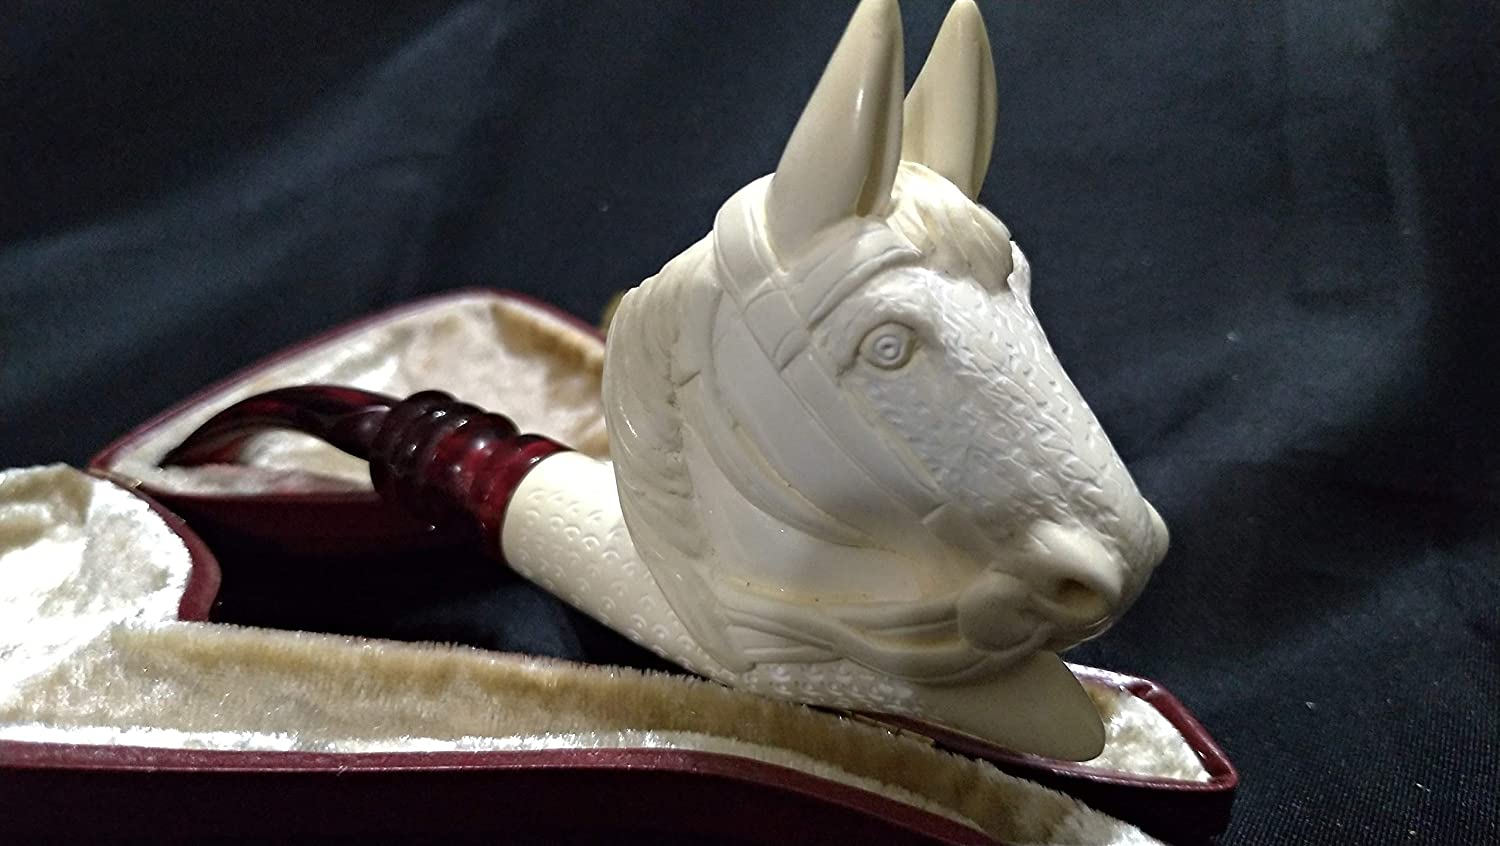 Horse Meerschaum pipe carved from a Block Meerschaum & case by CPW